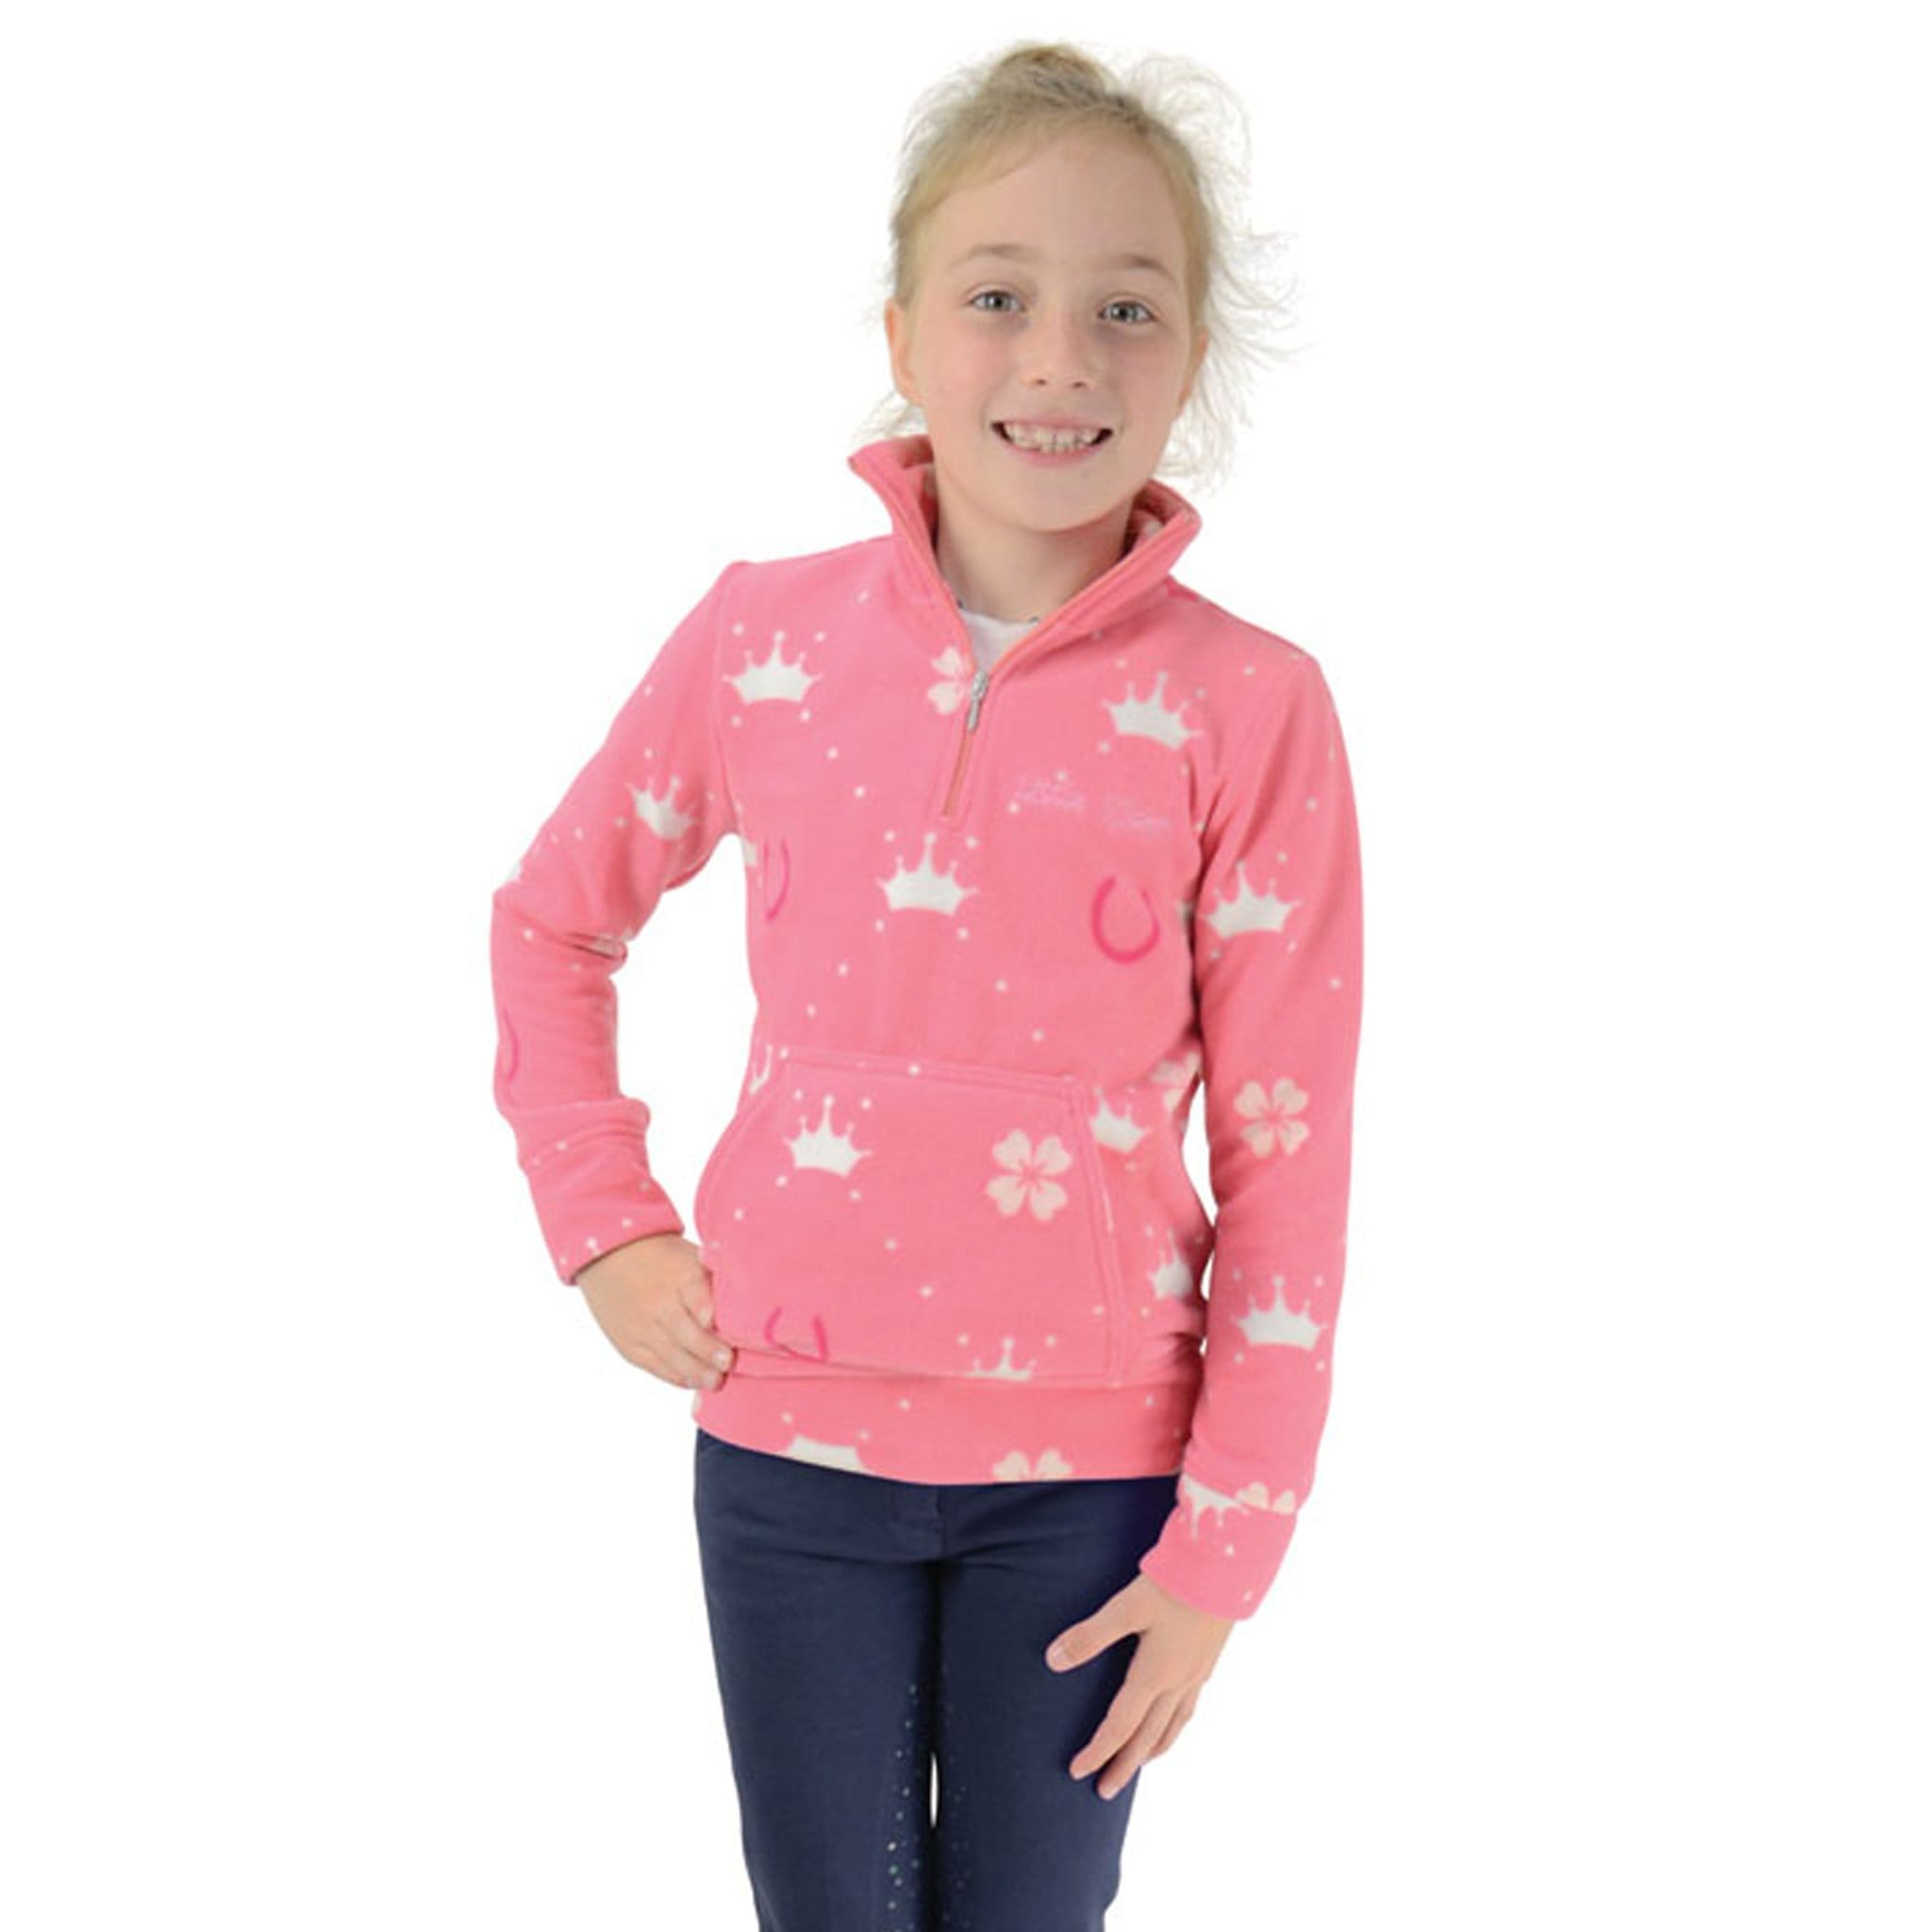 Hy Little Rider Elsa Soft Fleece Front Closer Up 26252.